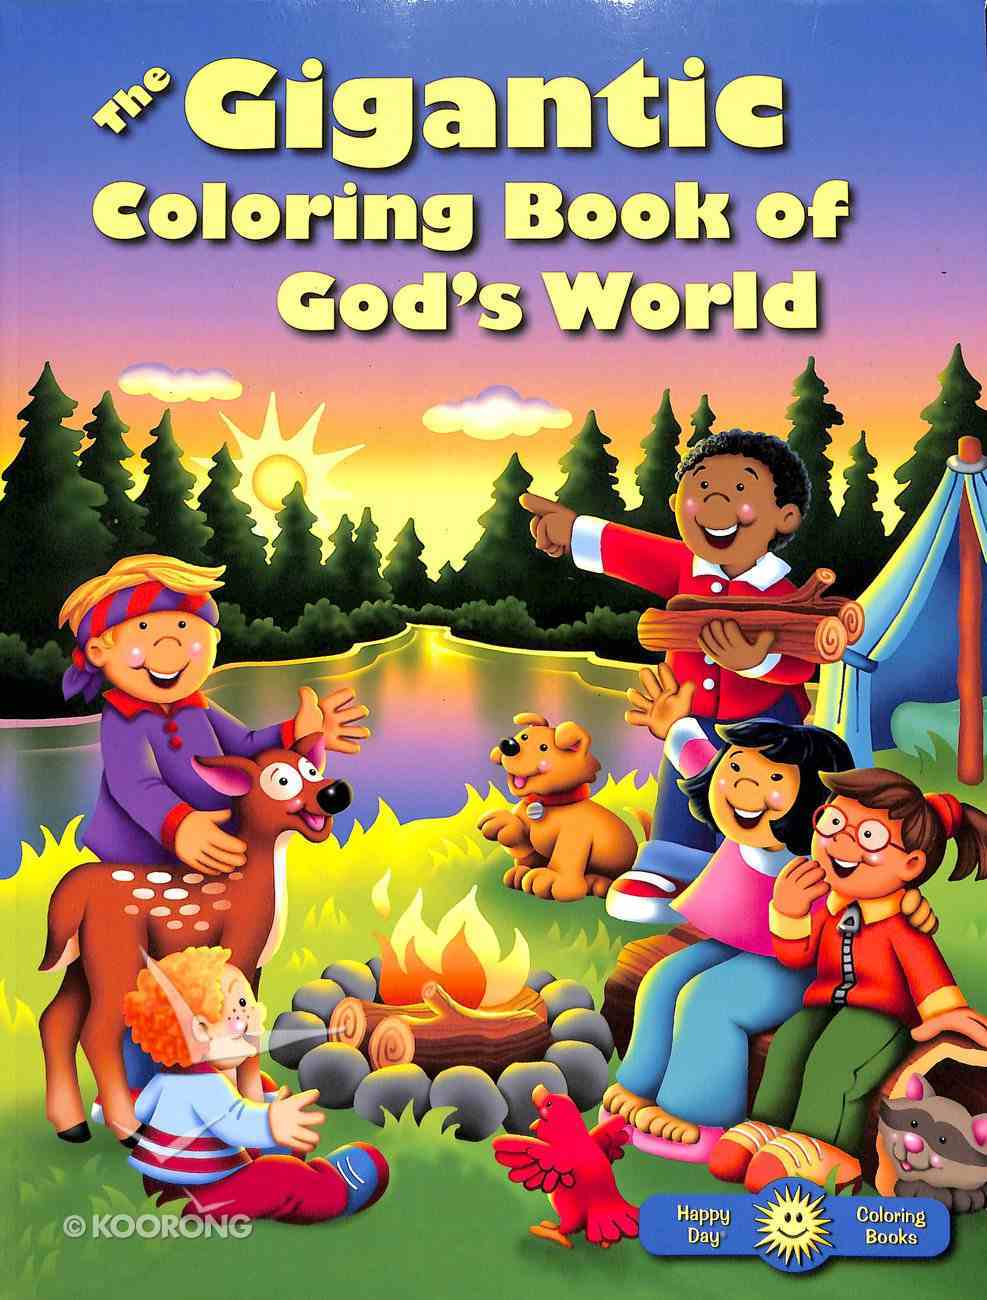 The Gigantic Coloring Book of God's World Paperback